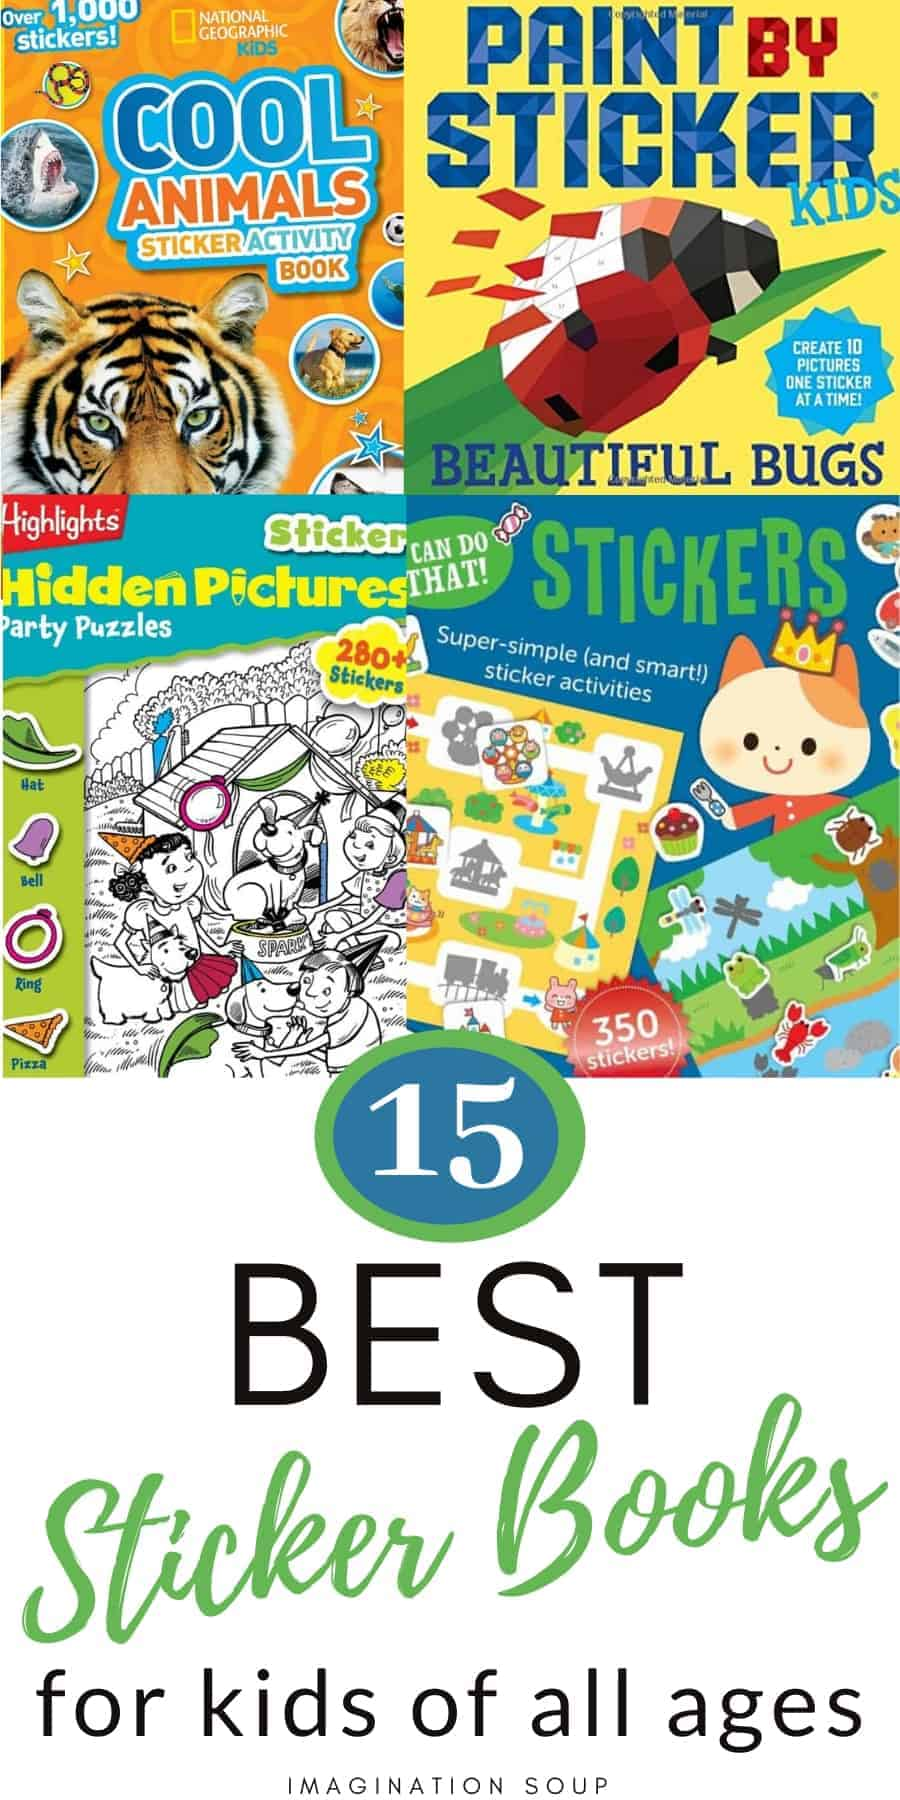 15 best sticker books for kids of all ages